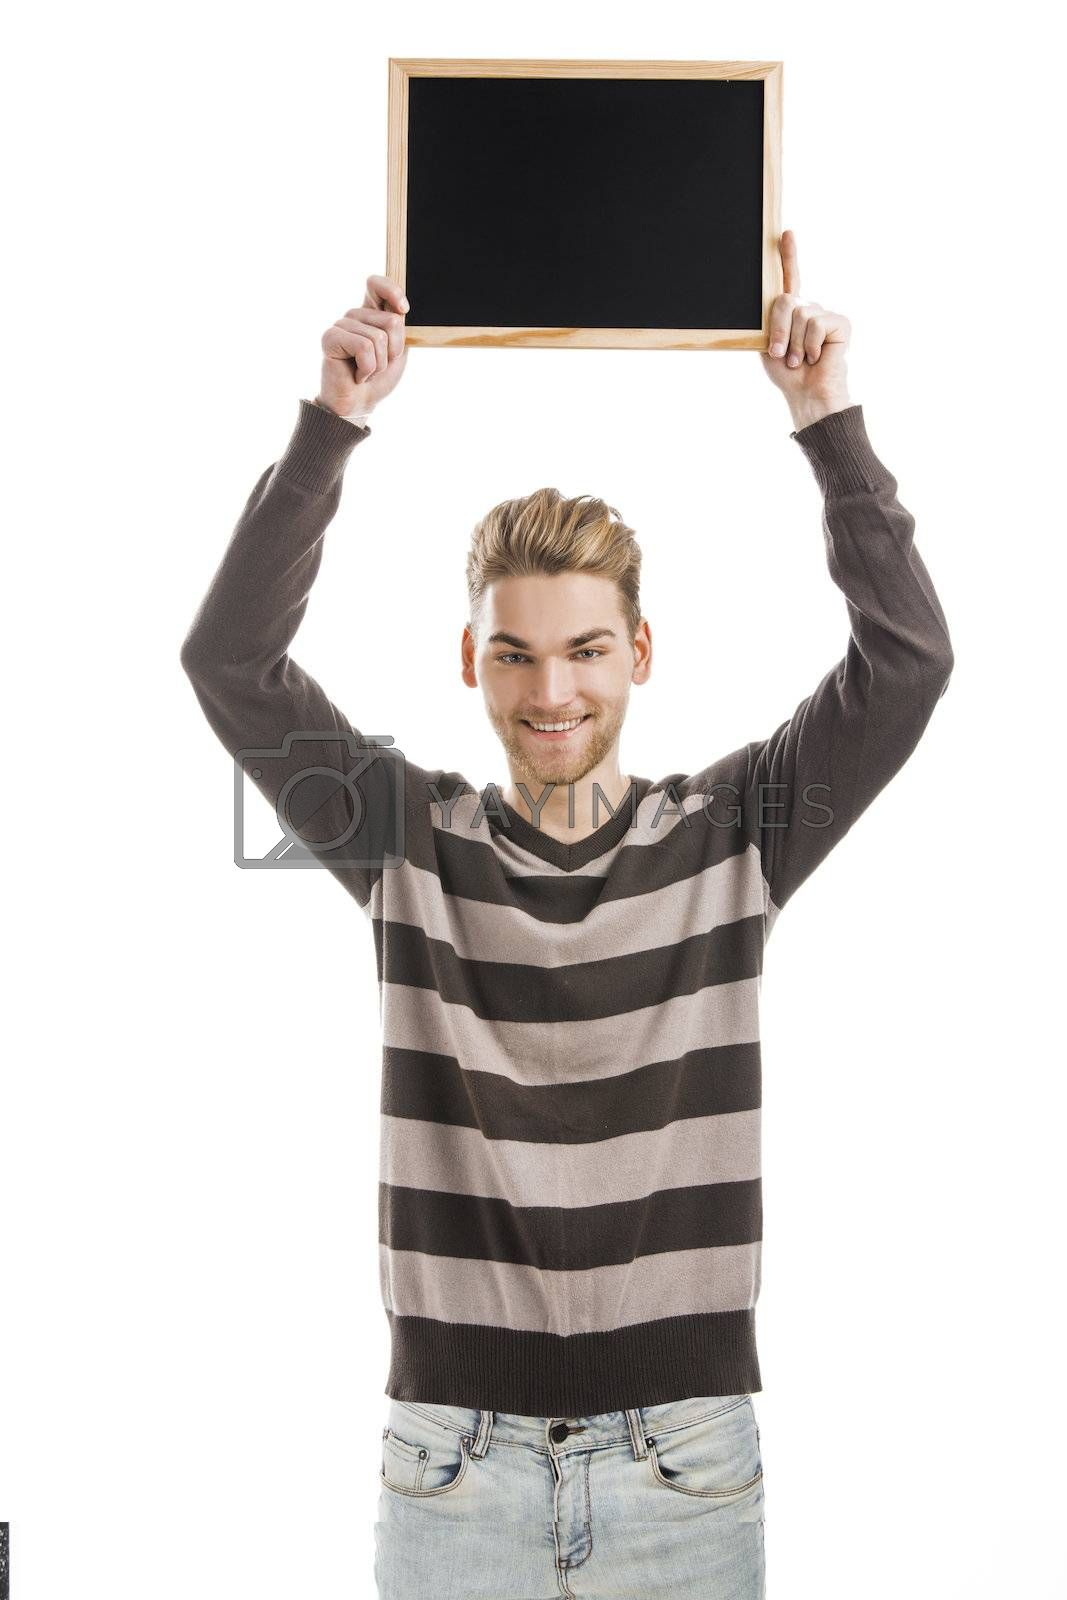 Royalty free image of Man holding a chalkboard by Iko